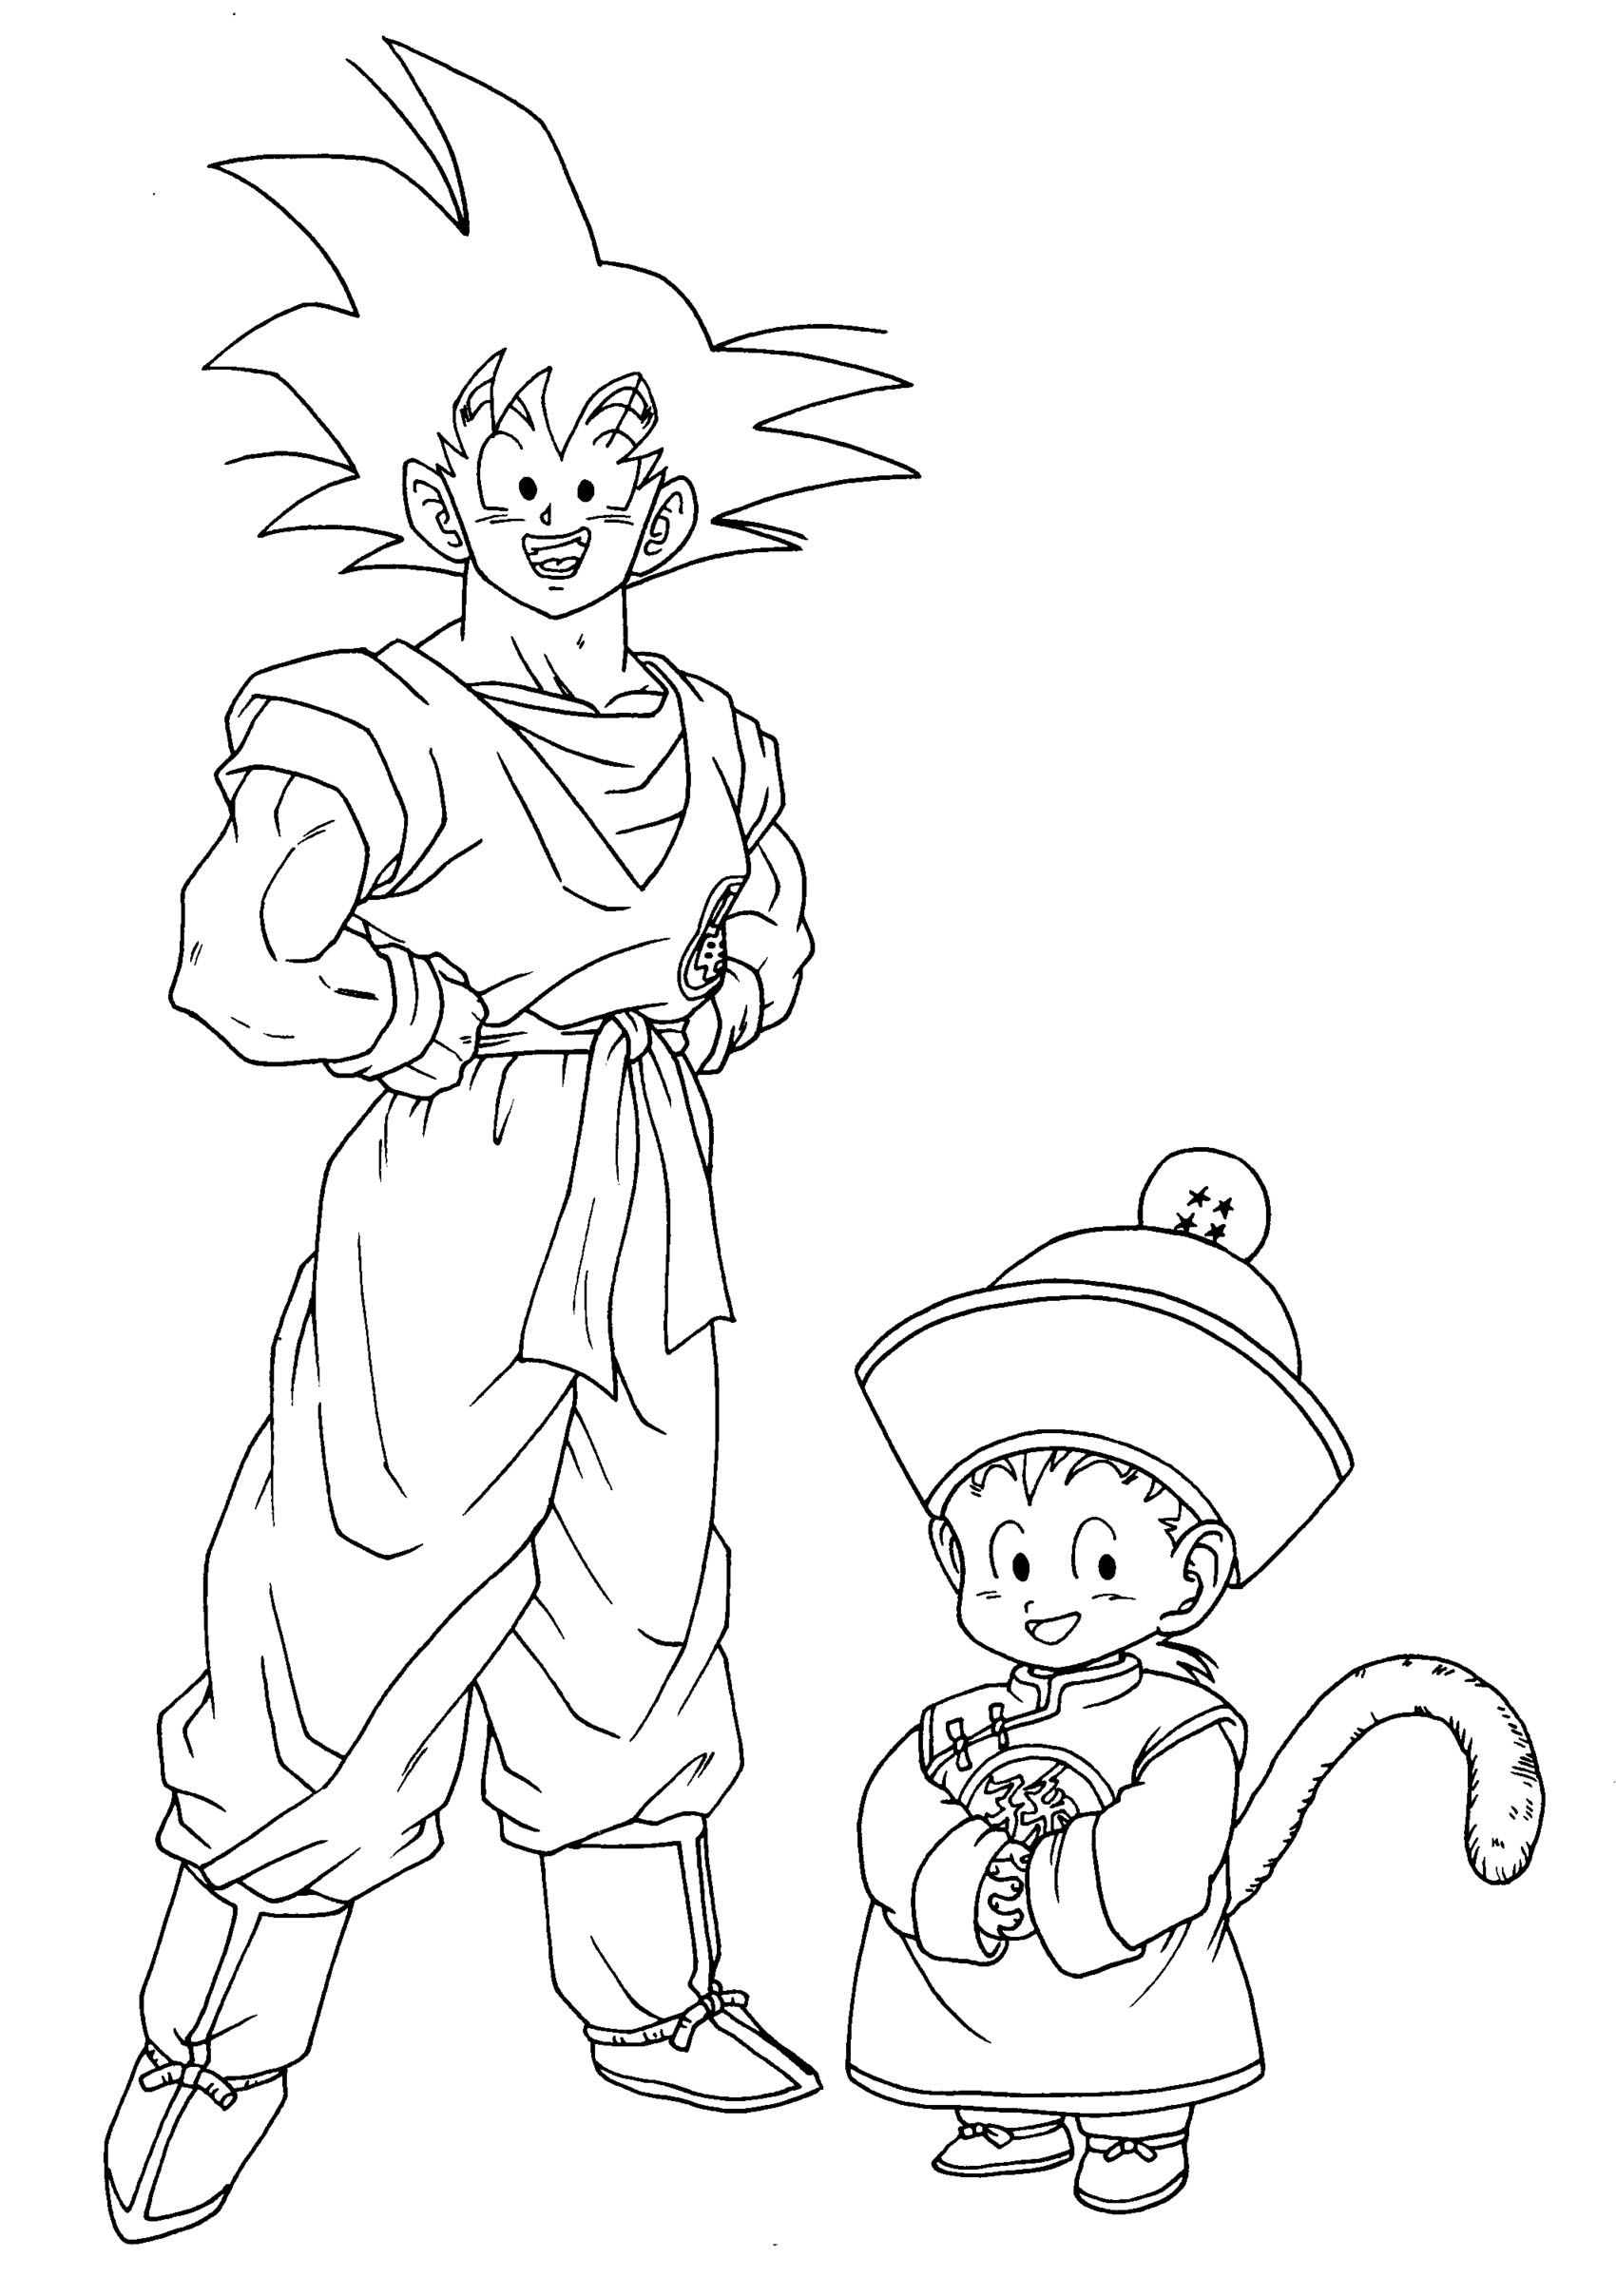 coloriages dragon ball z 11